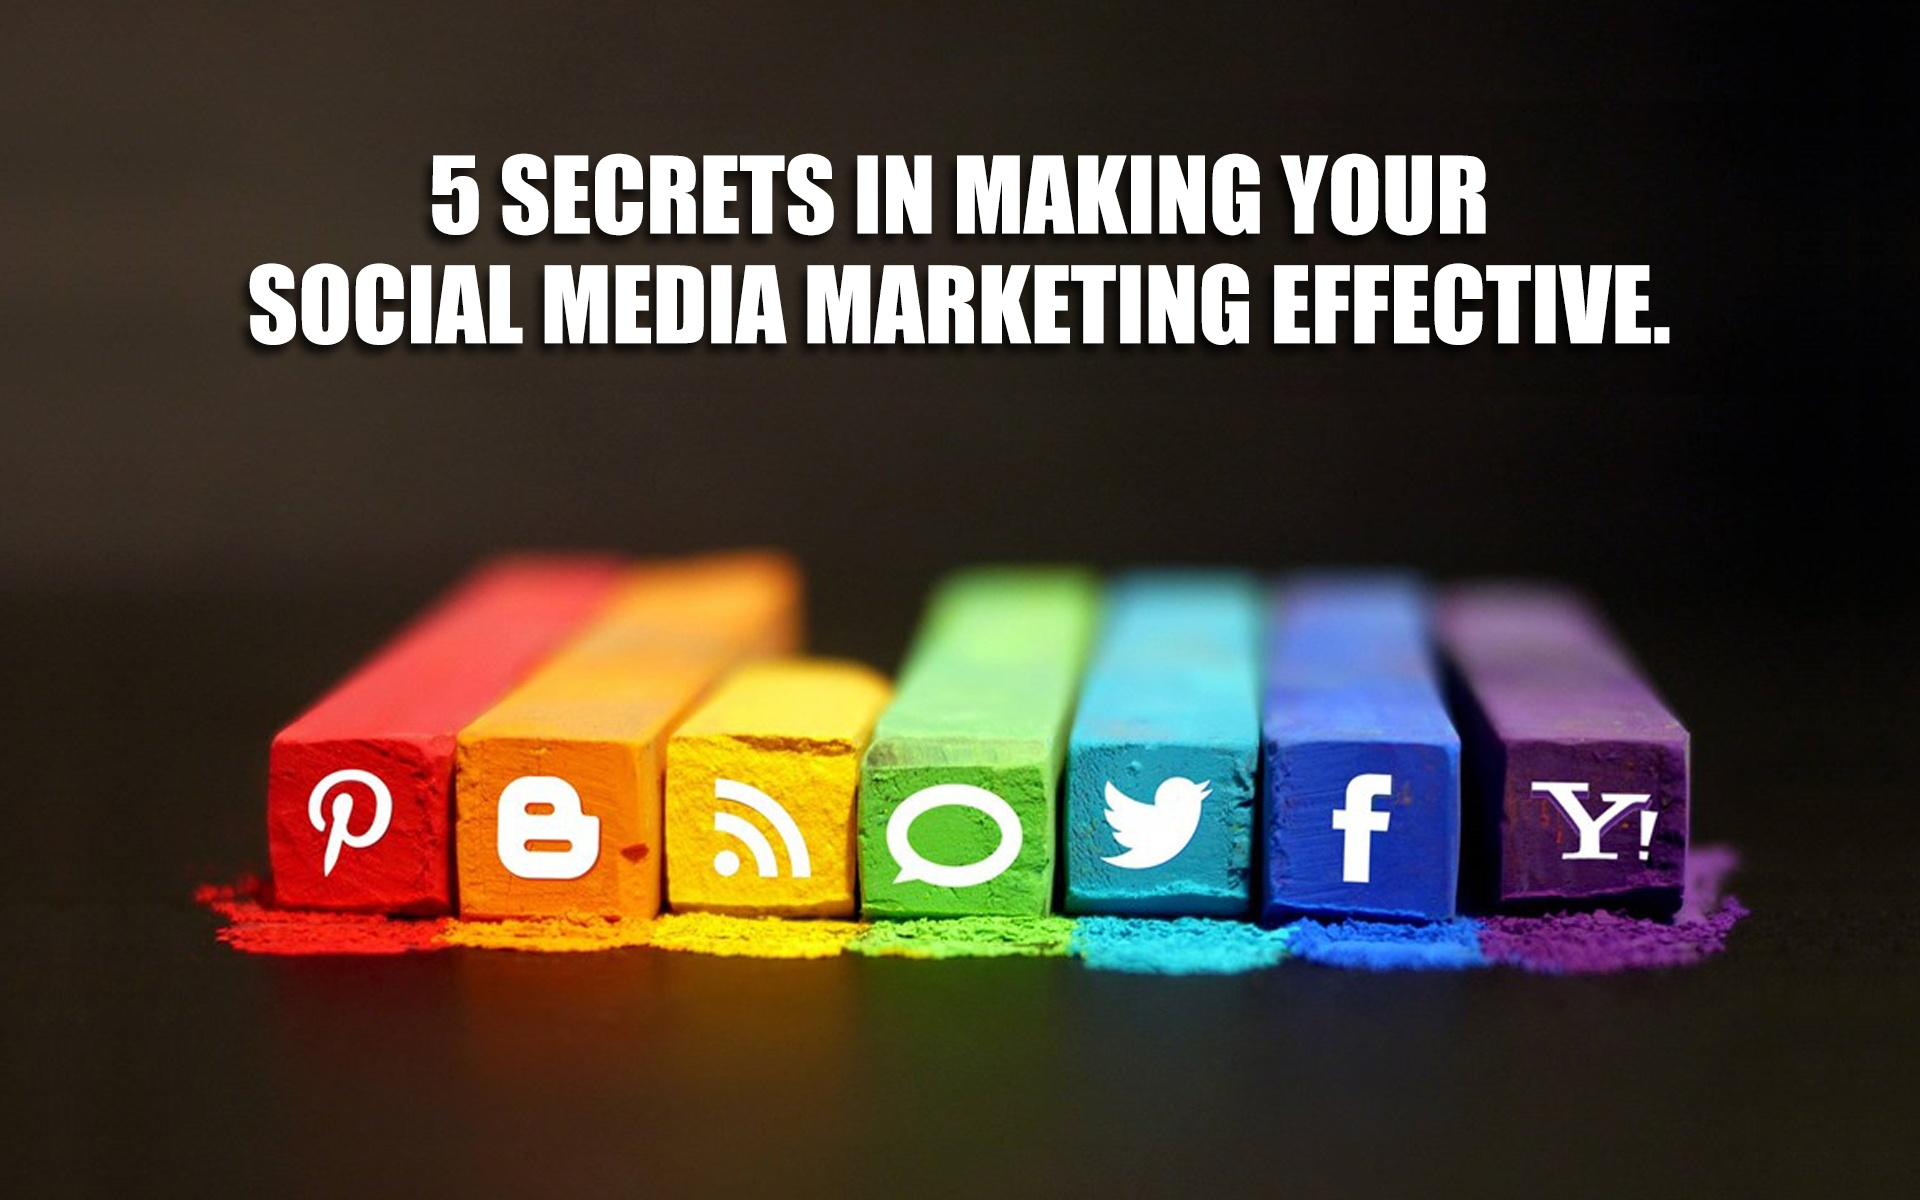 5 Secrets in Making Your Social Media Marketing Effective